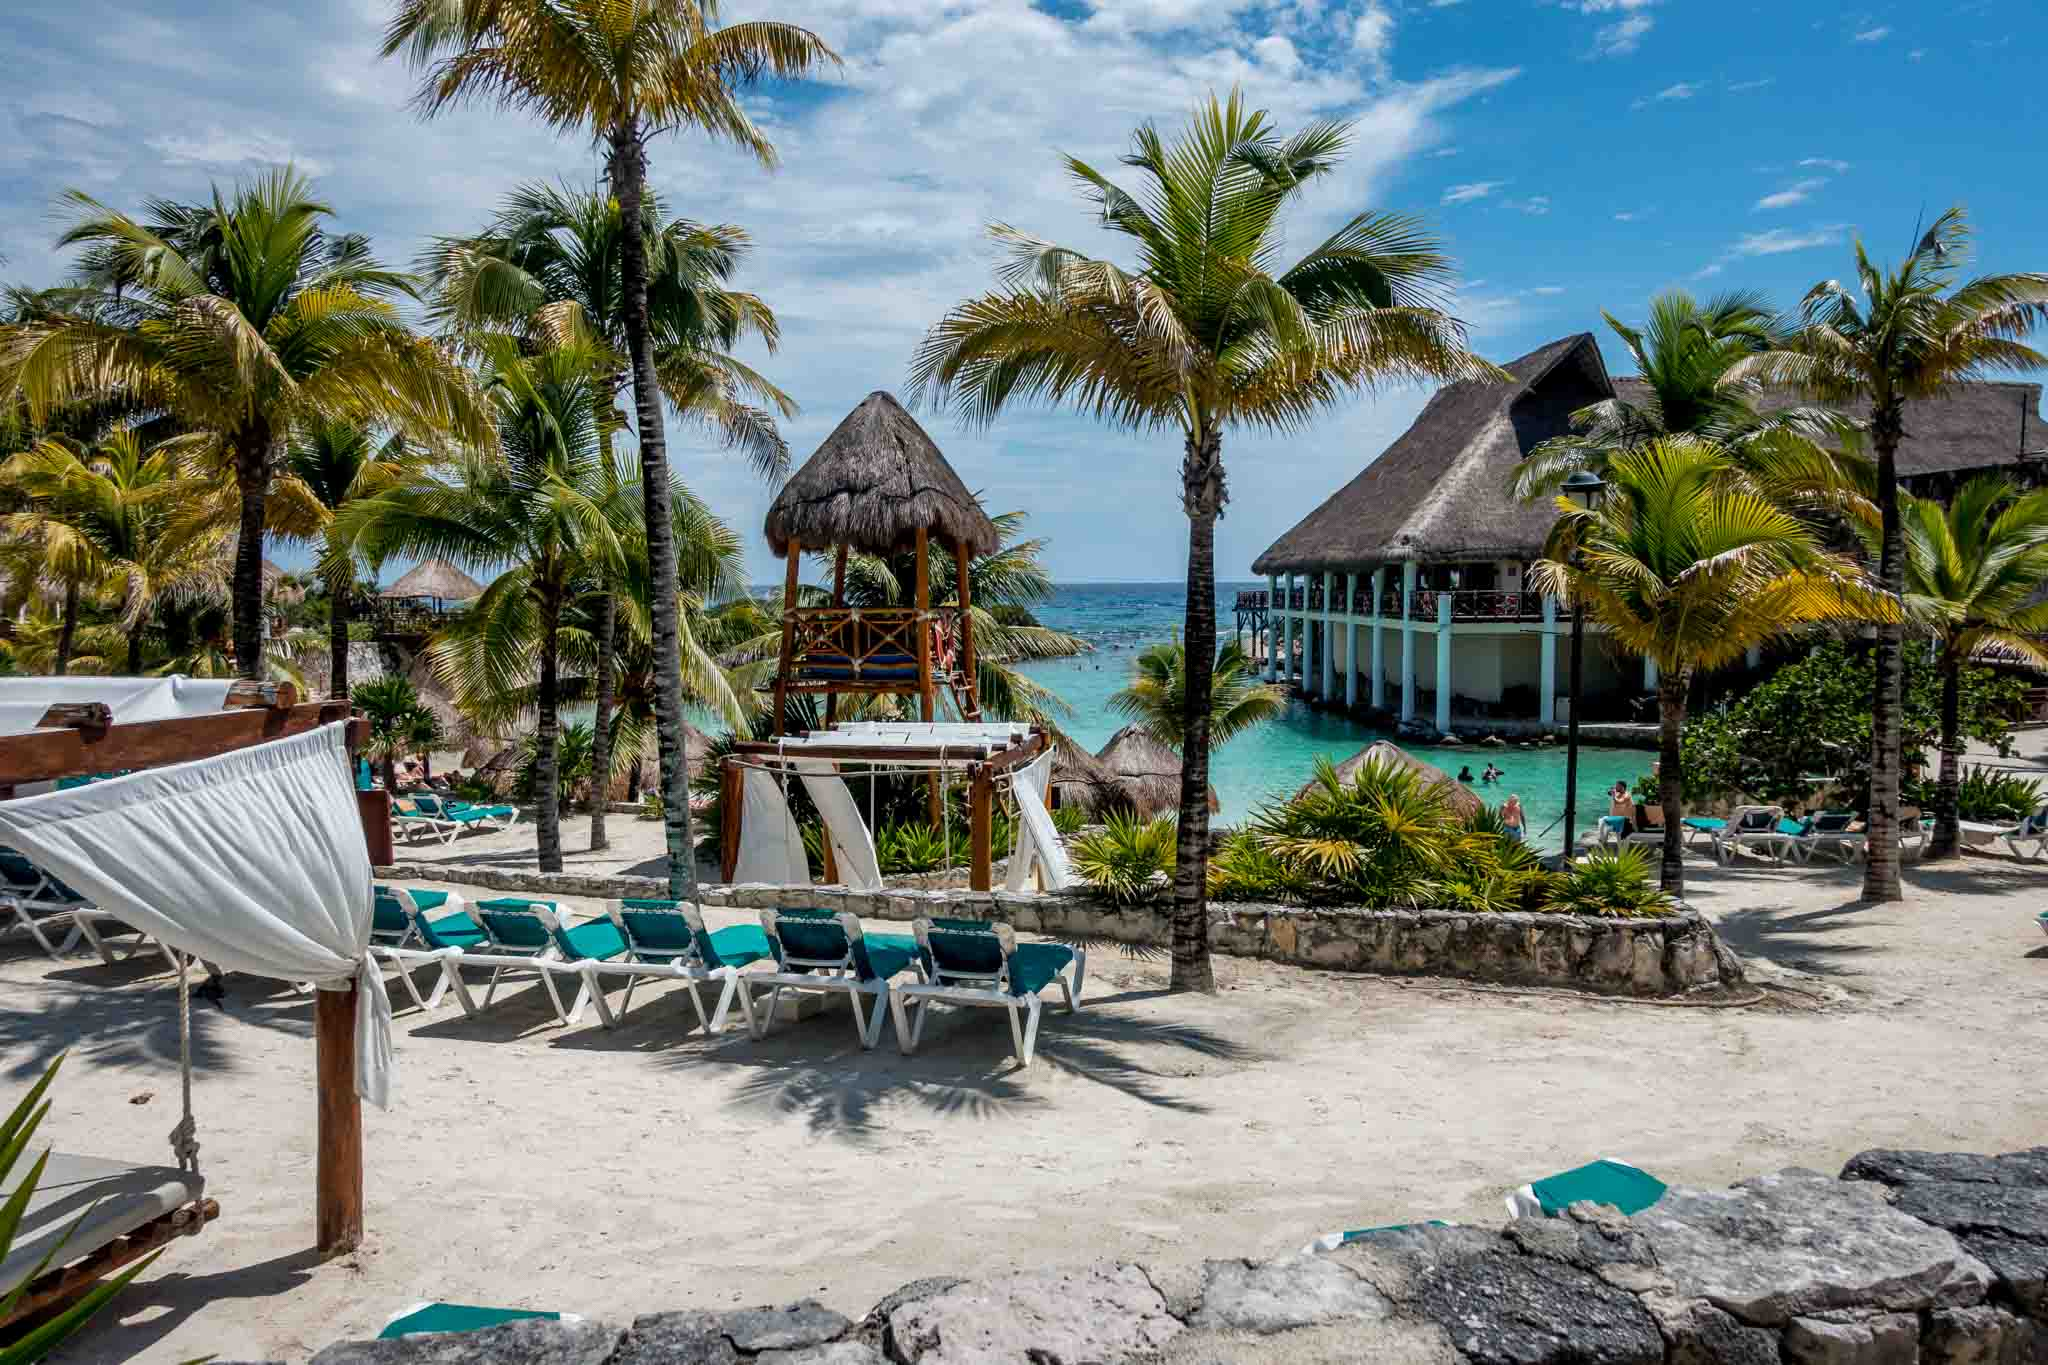 Beach area with lounge chairs and palm trees in Mexico